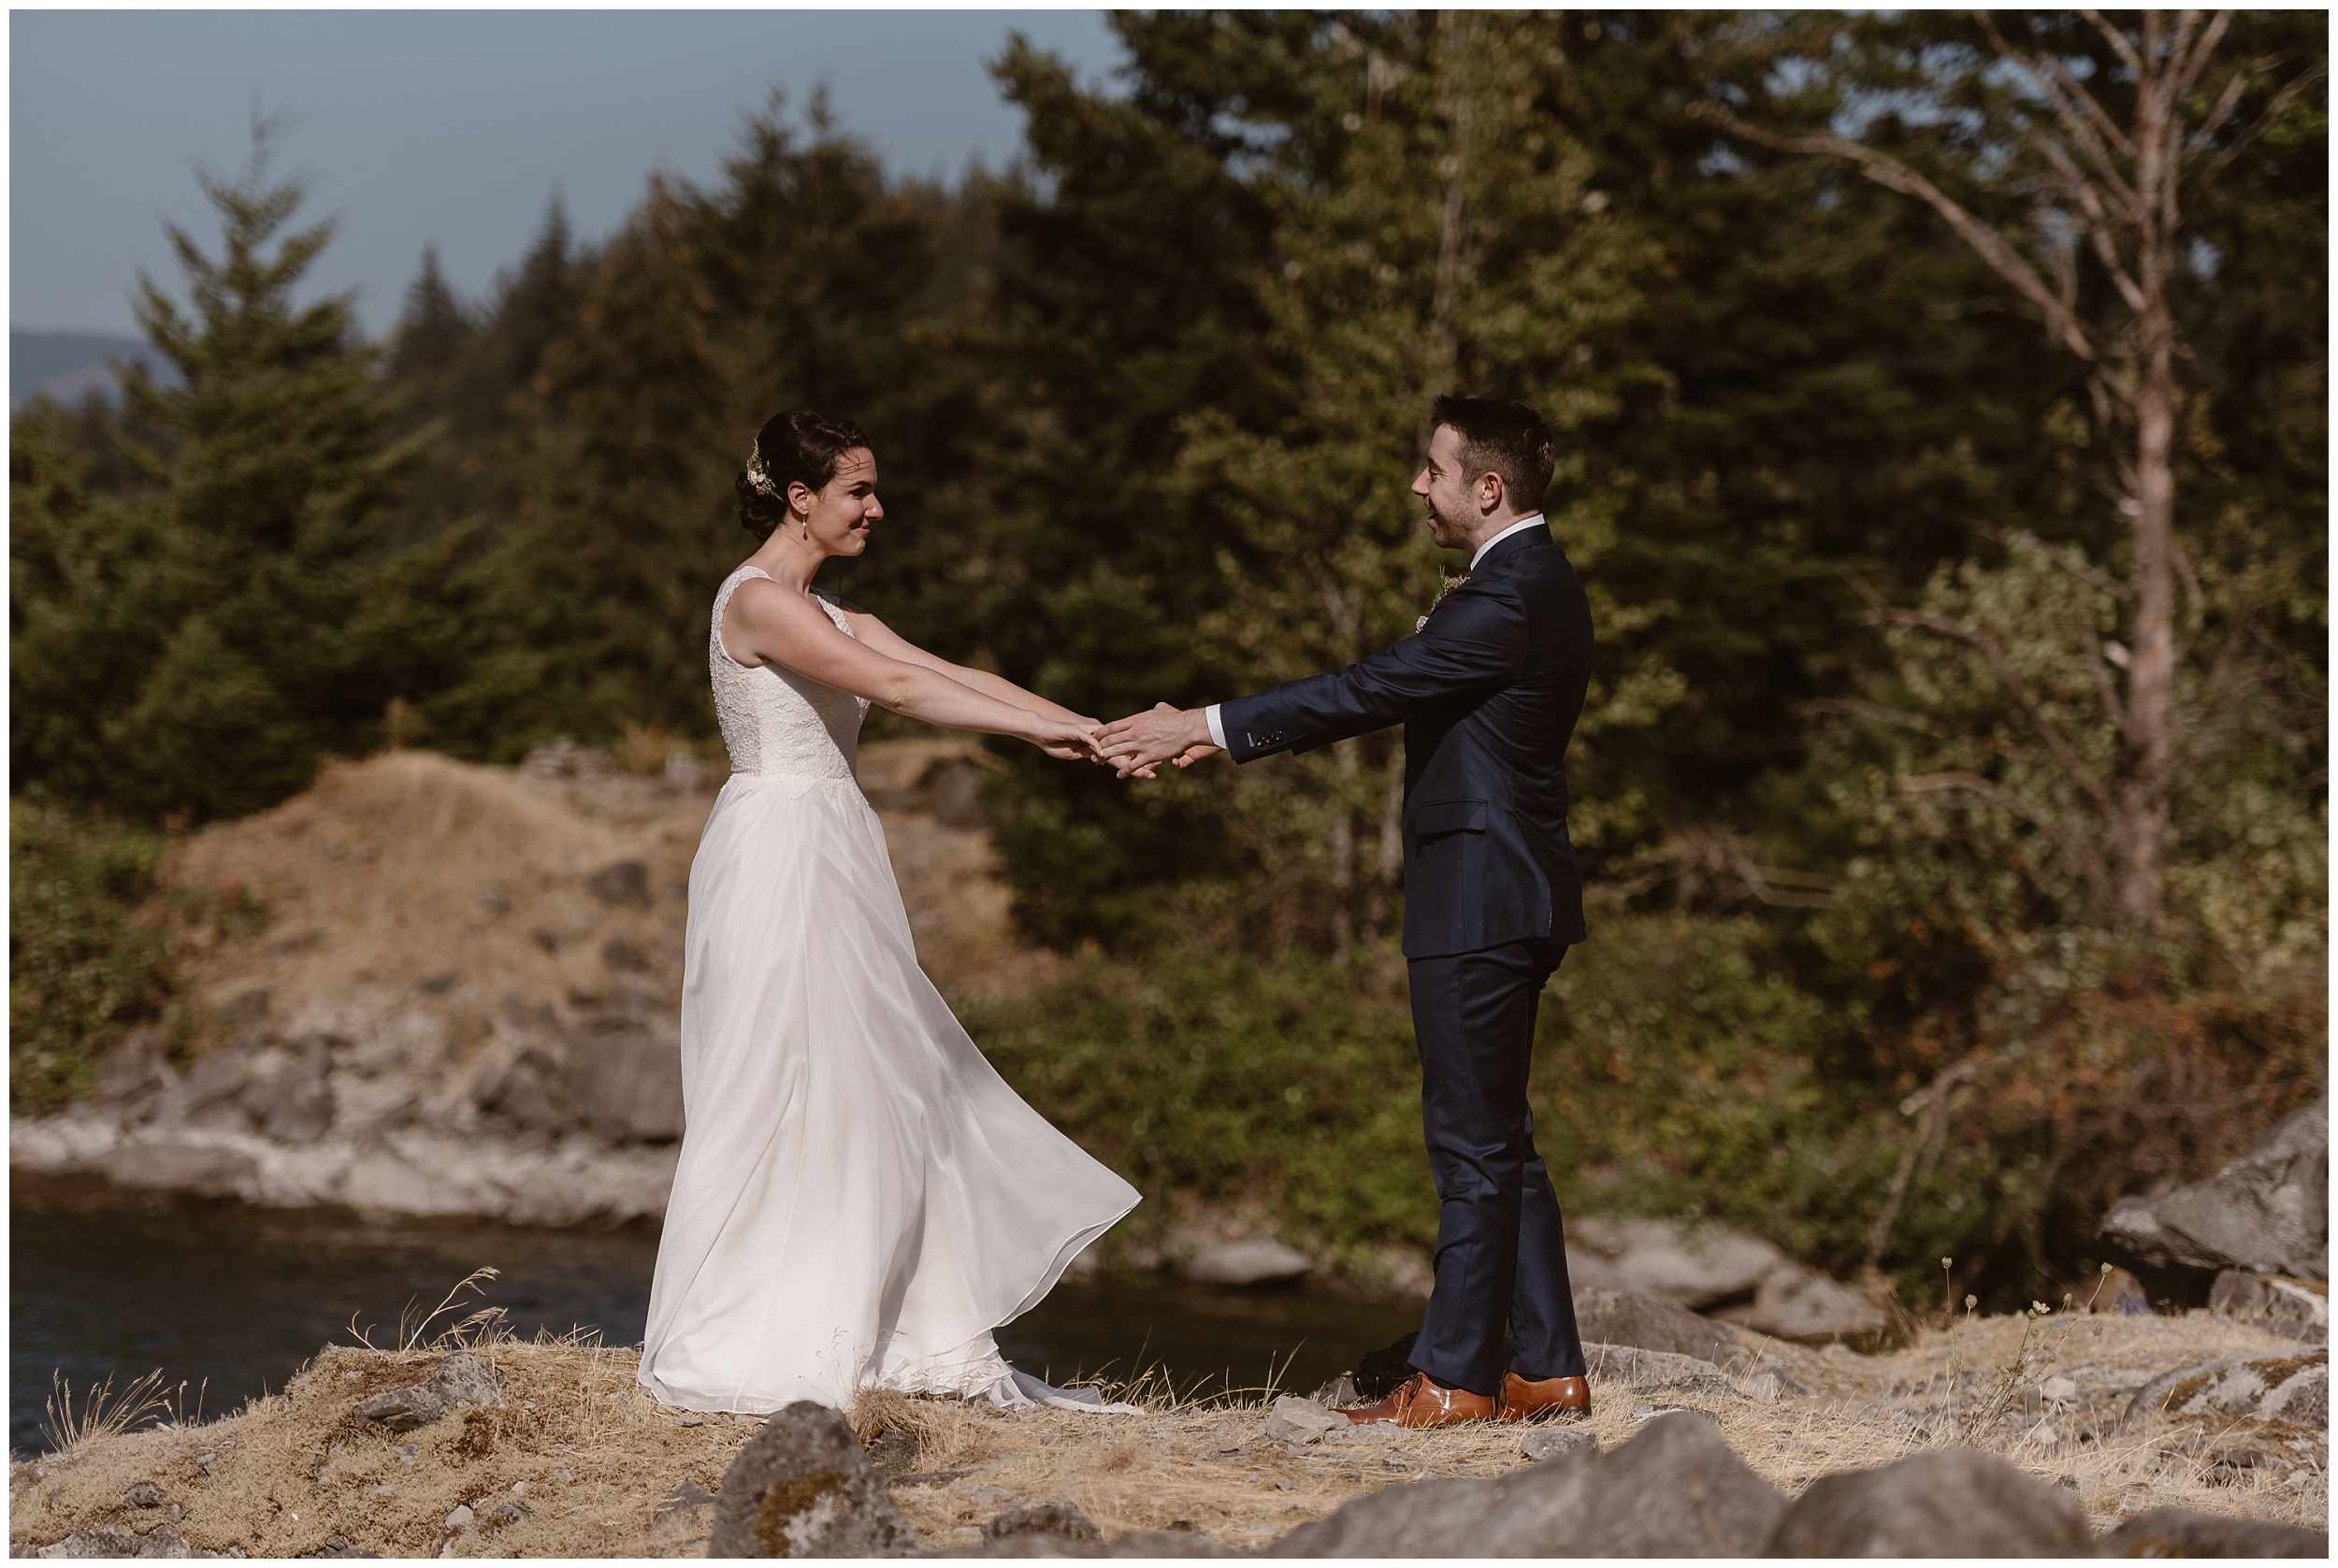 The bride and groom take hands as they gaze at each other during their first look before their elopement ceremony. As they stand on the edge of a cliff on the Columbia River Gorge, they take a moment to absorb the dreamy, moody PNW feels before their Oergon elopement.